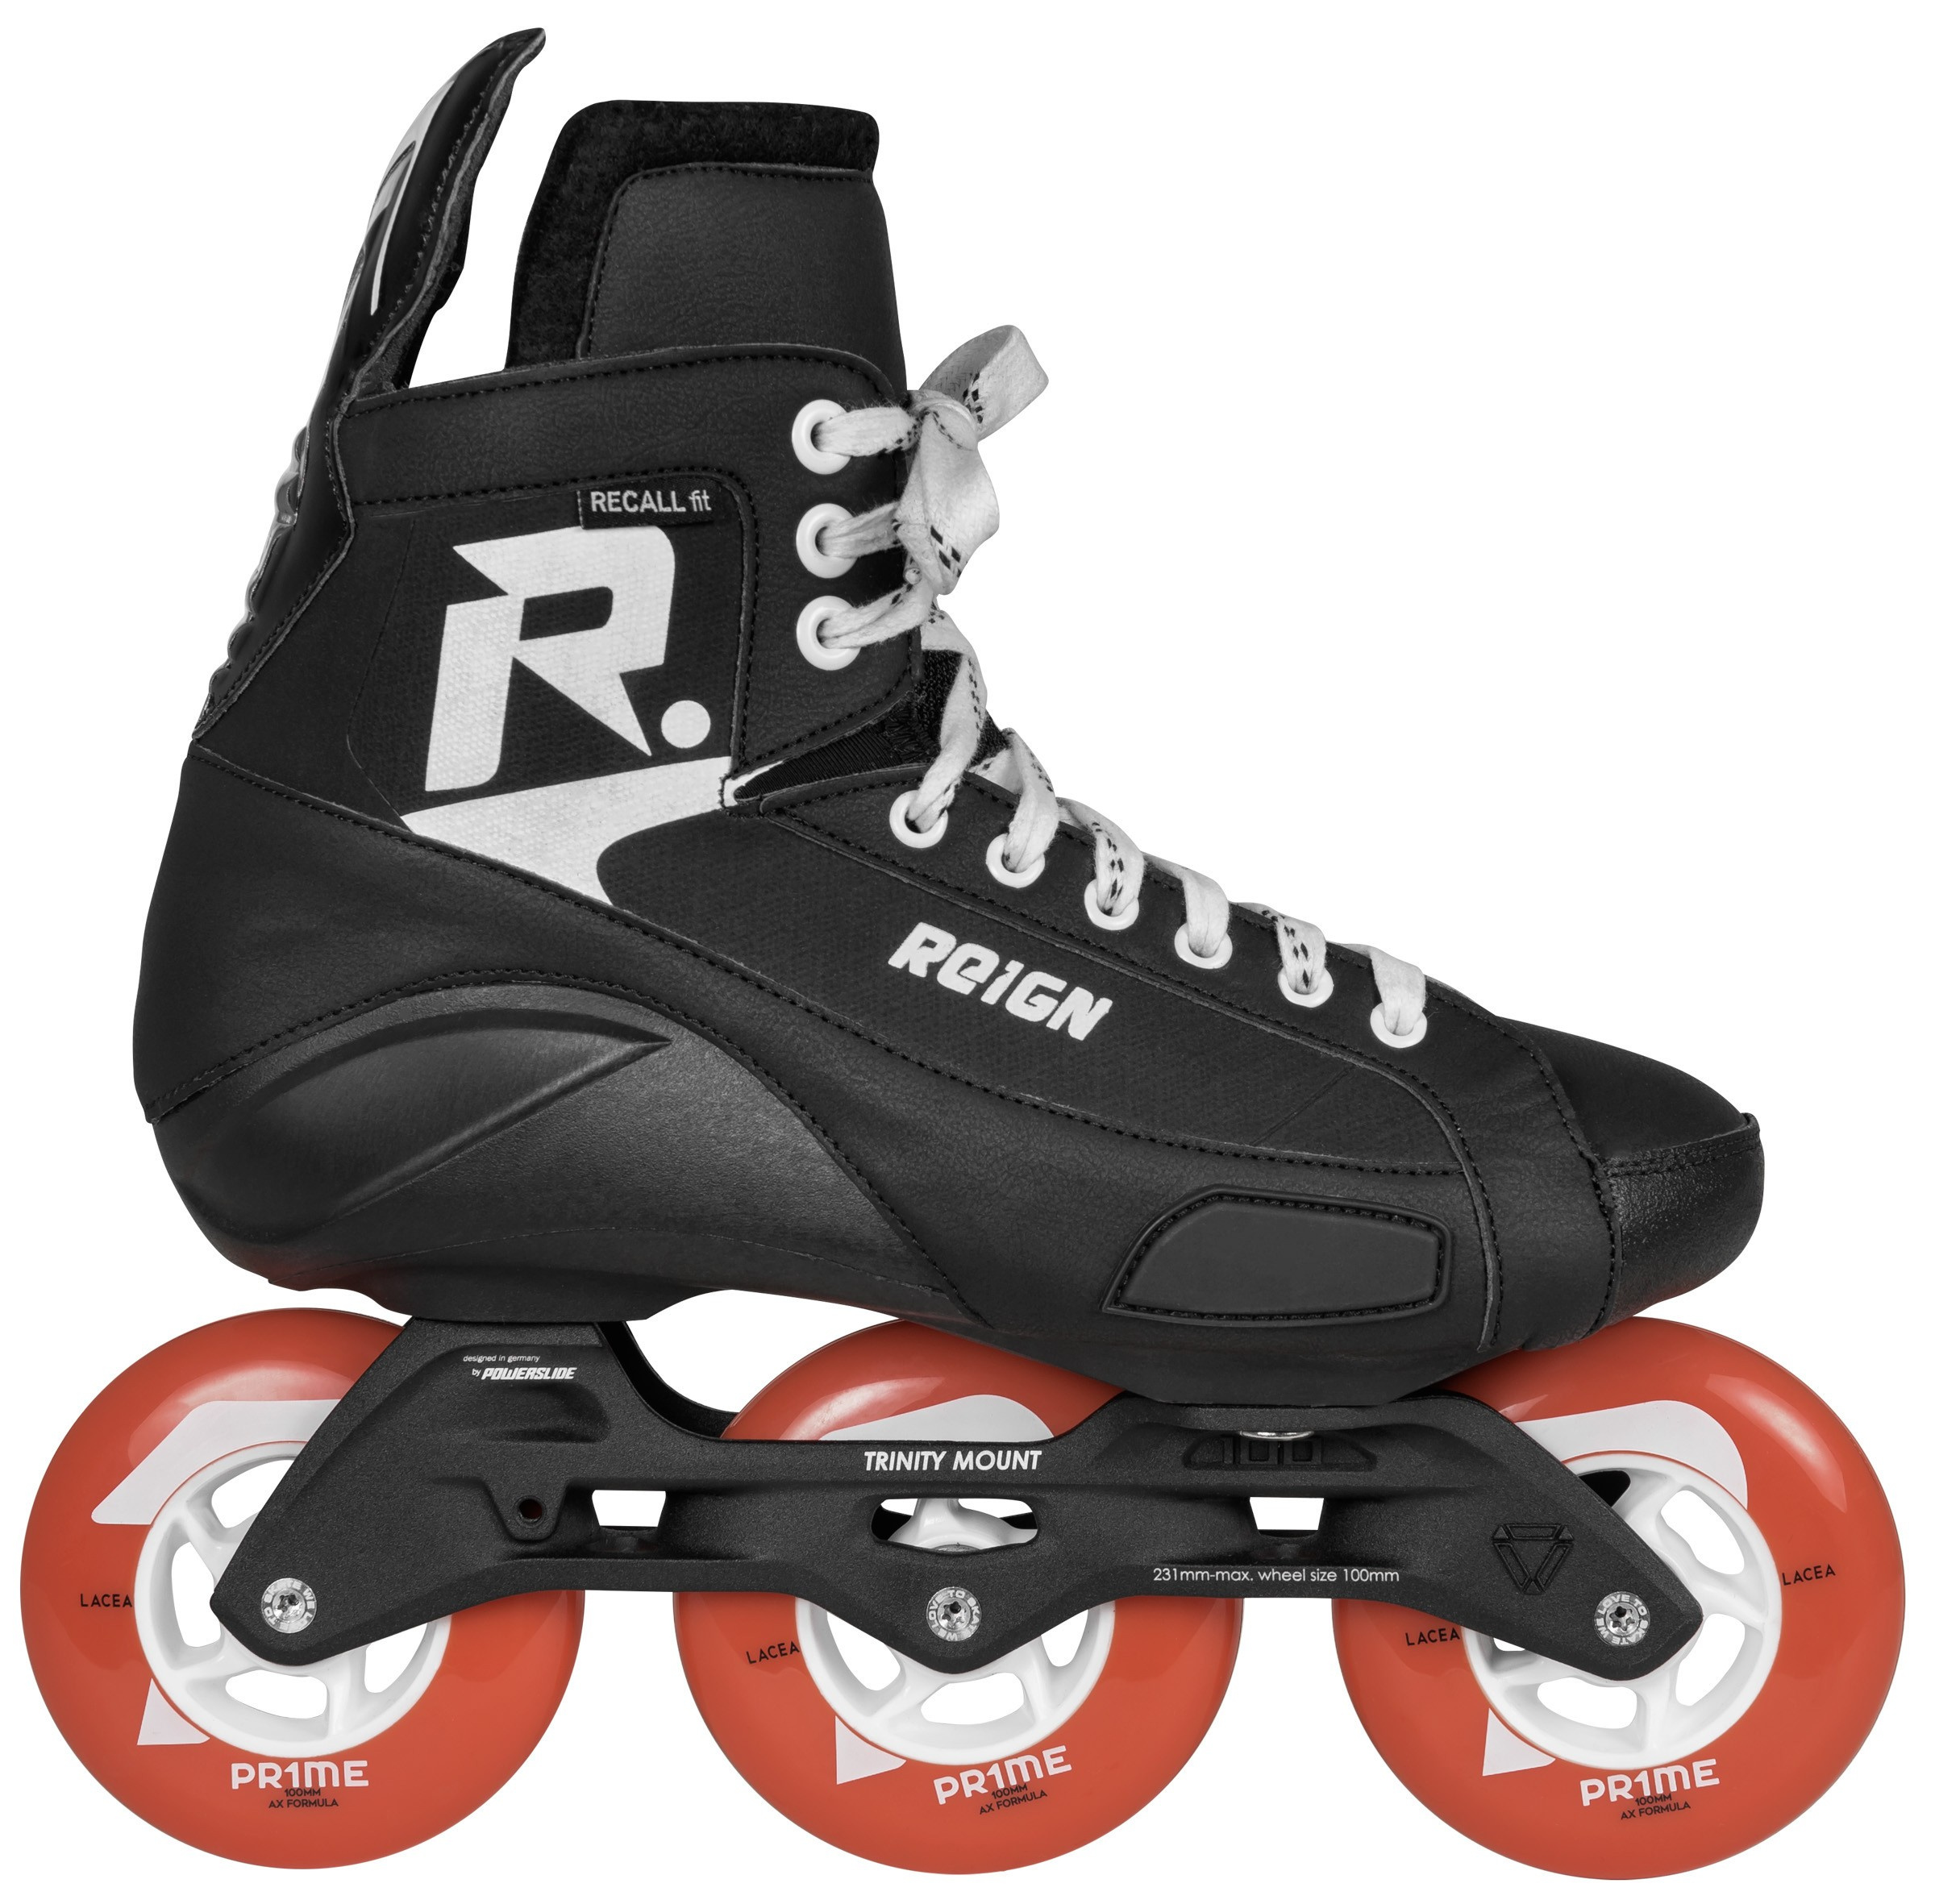 Powerslide Reign Apollo Trinity in-line skates